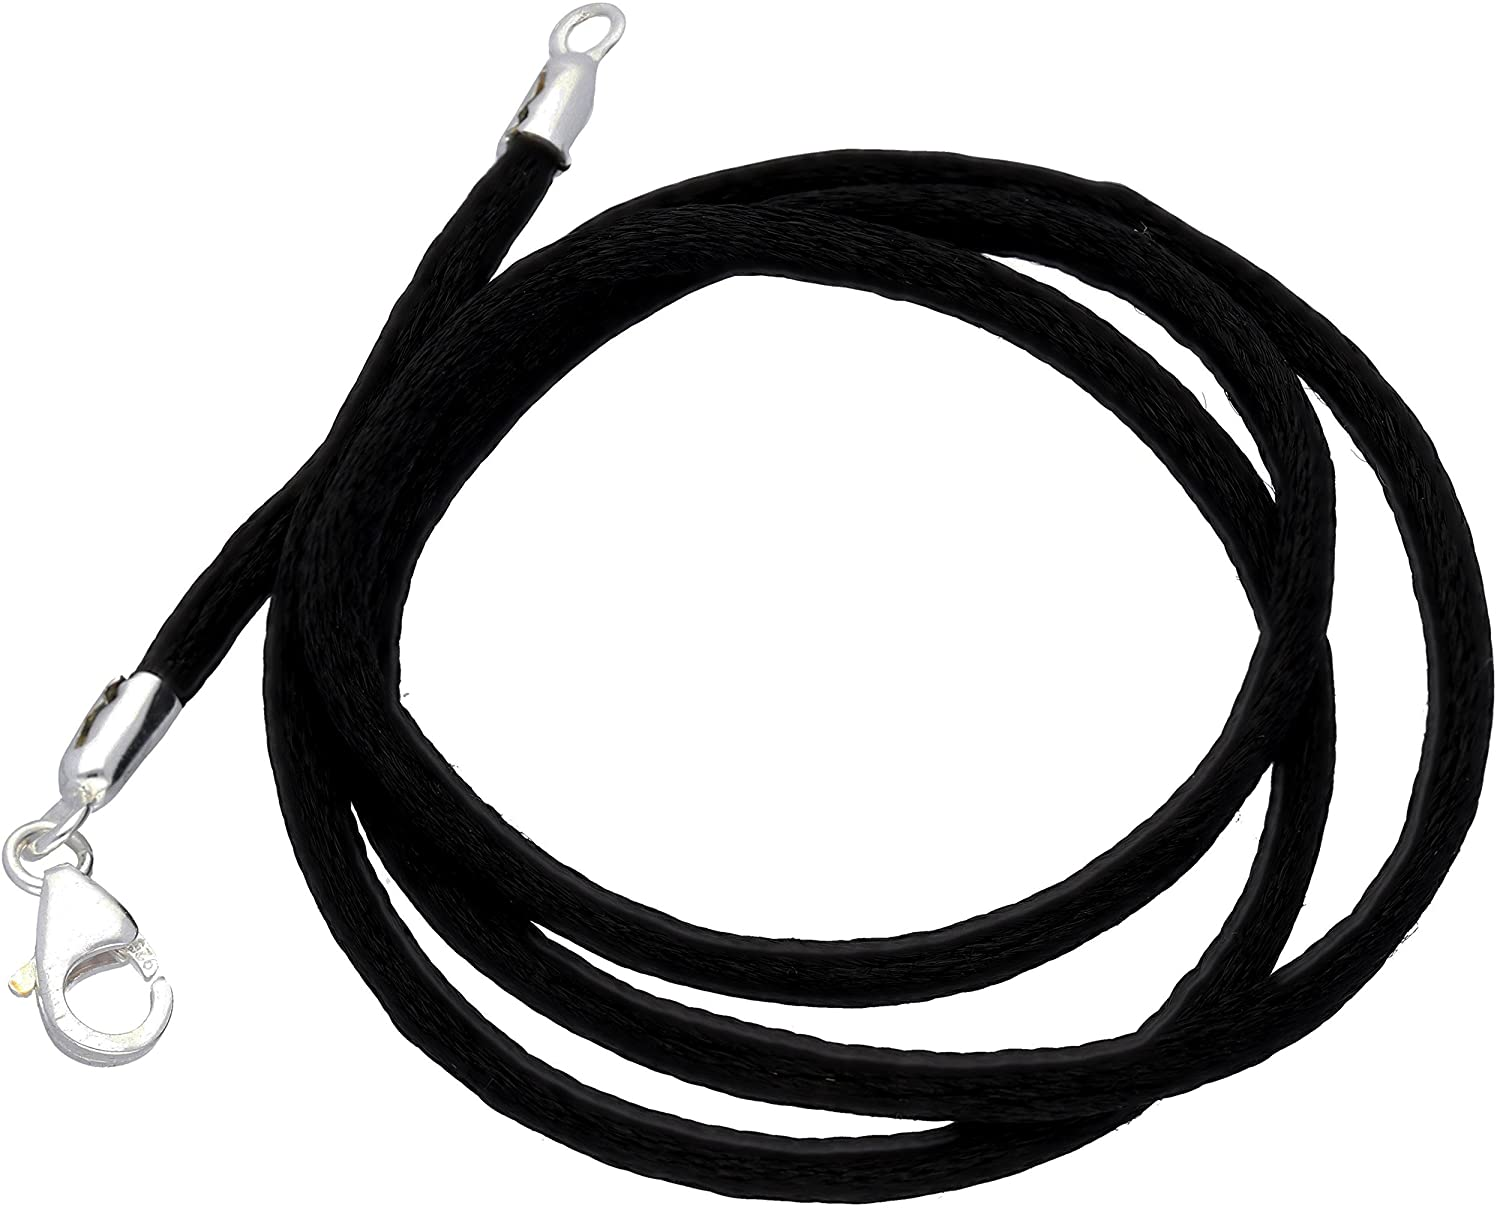 New Black Silk Cord Chain Necklace Sterling Silver(Lengths 15